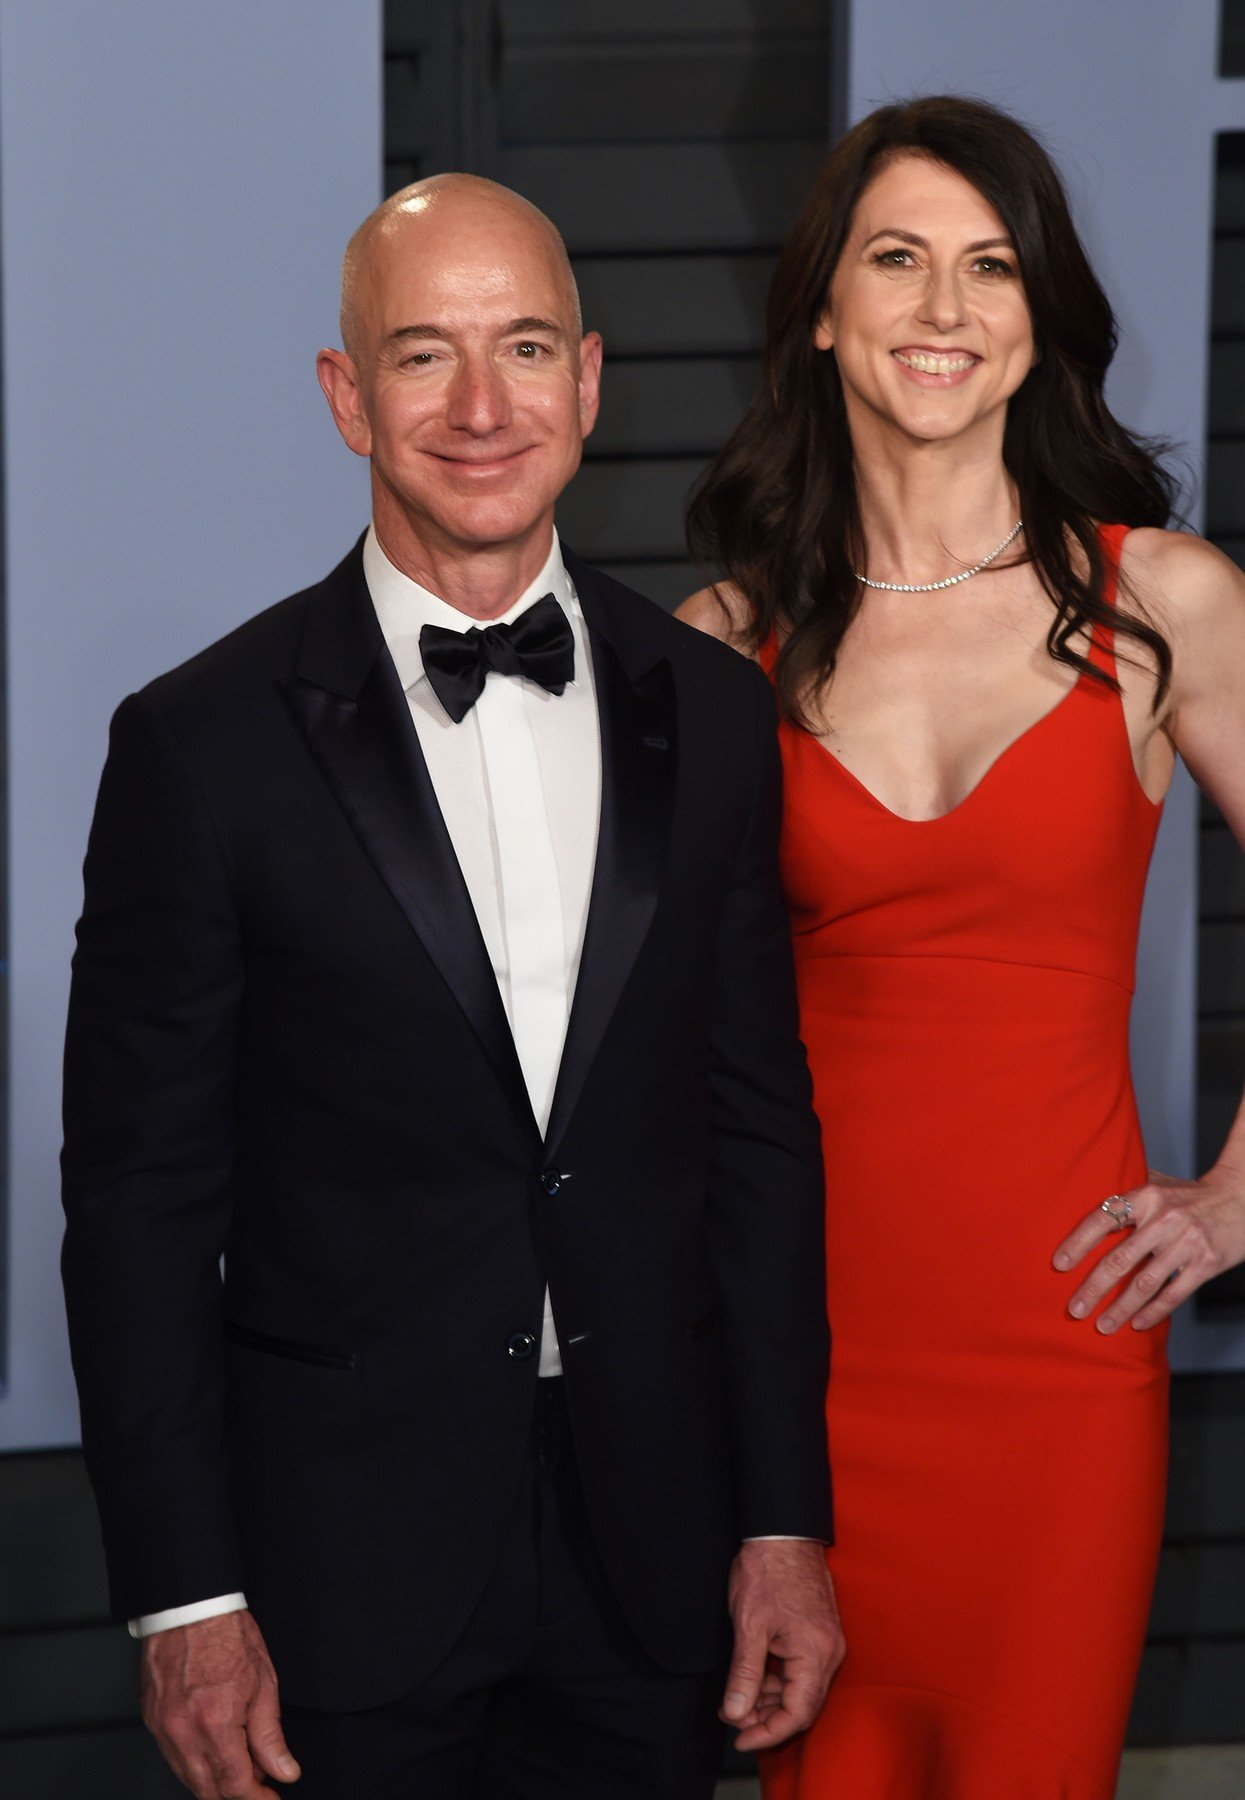 Jeff Bezos and MacKenzie Bezos Vanity Fair Oscar Party, Arrivals, Los Angeles, USA - 04 Mar 2018, Image: 365158764, License: Rights-managed, Restrictions: Managed by Silverhub, Model Release: no, Credit line: Profimedia, TEMP Rex Features